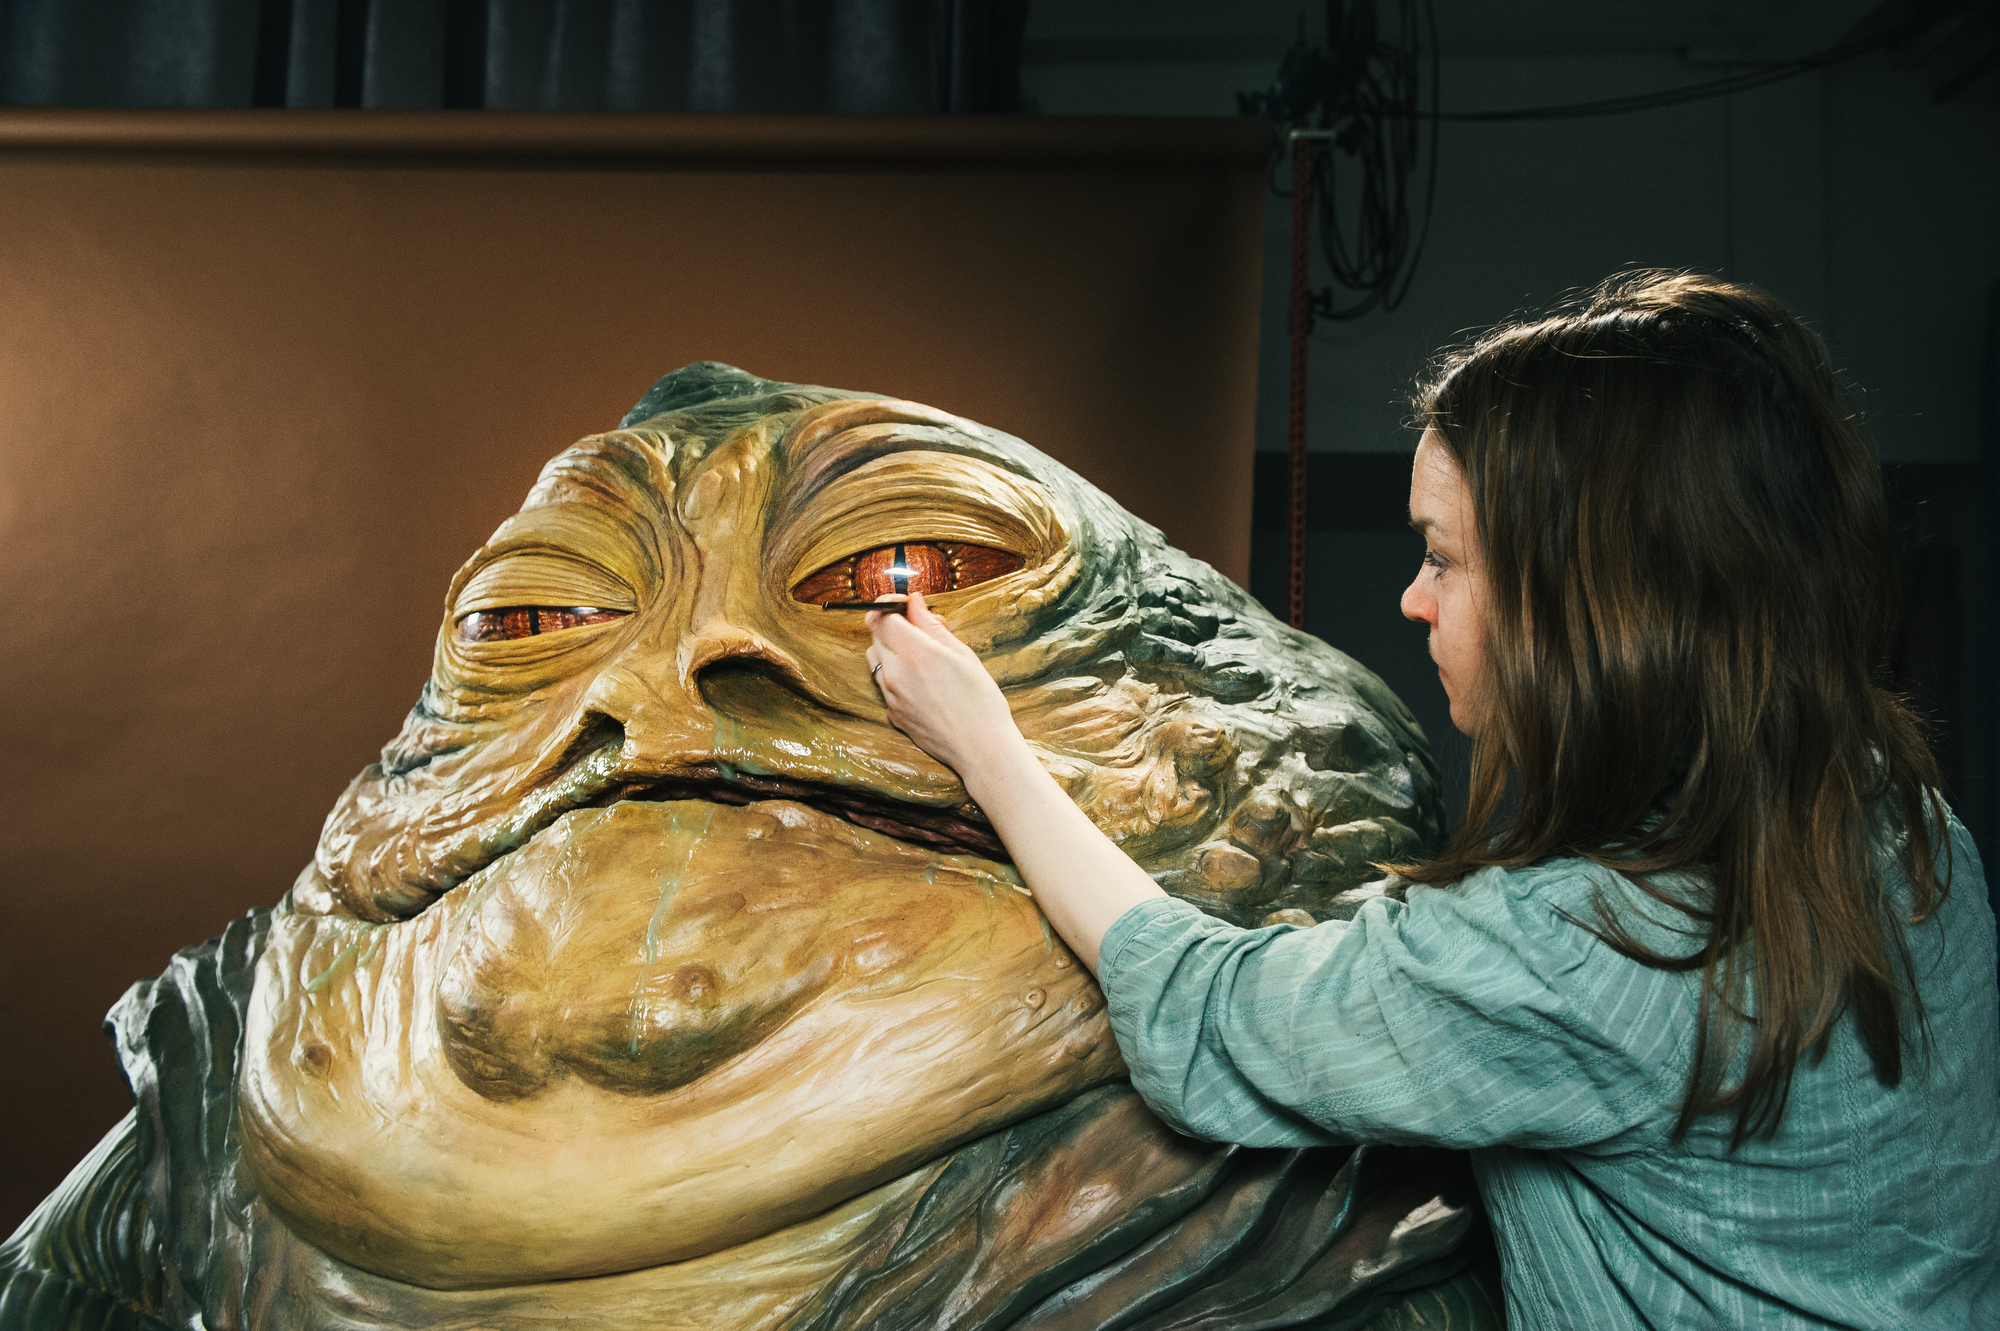 Madame-Tussauds-Star-Wars-Experience-JABBA-THE-HUTT-AND-PRINCESS-LEIA-11